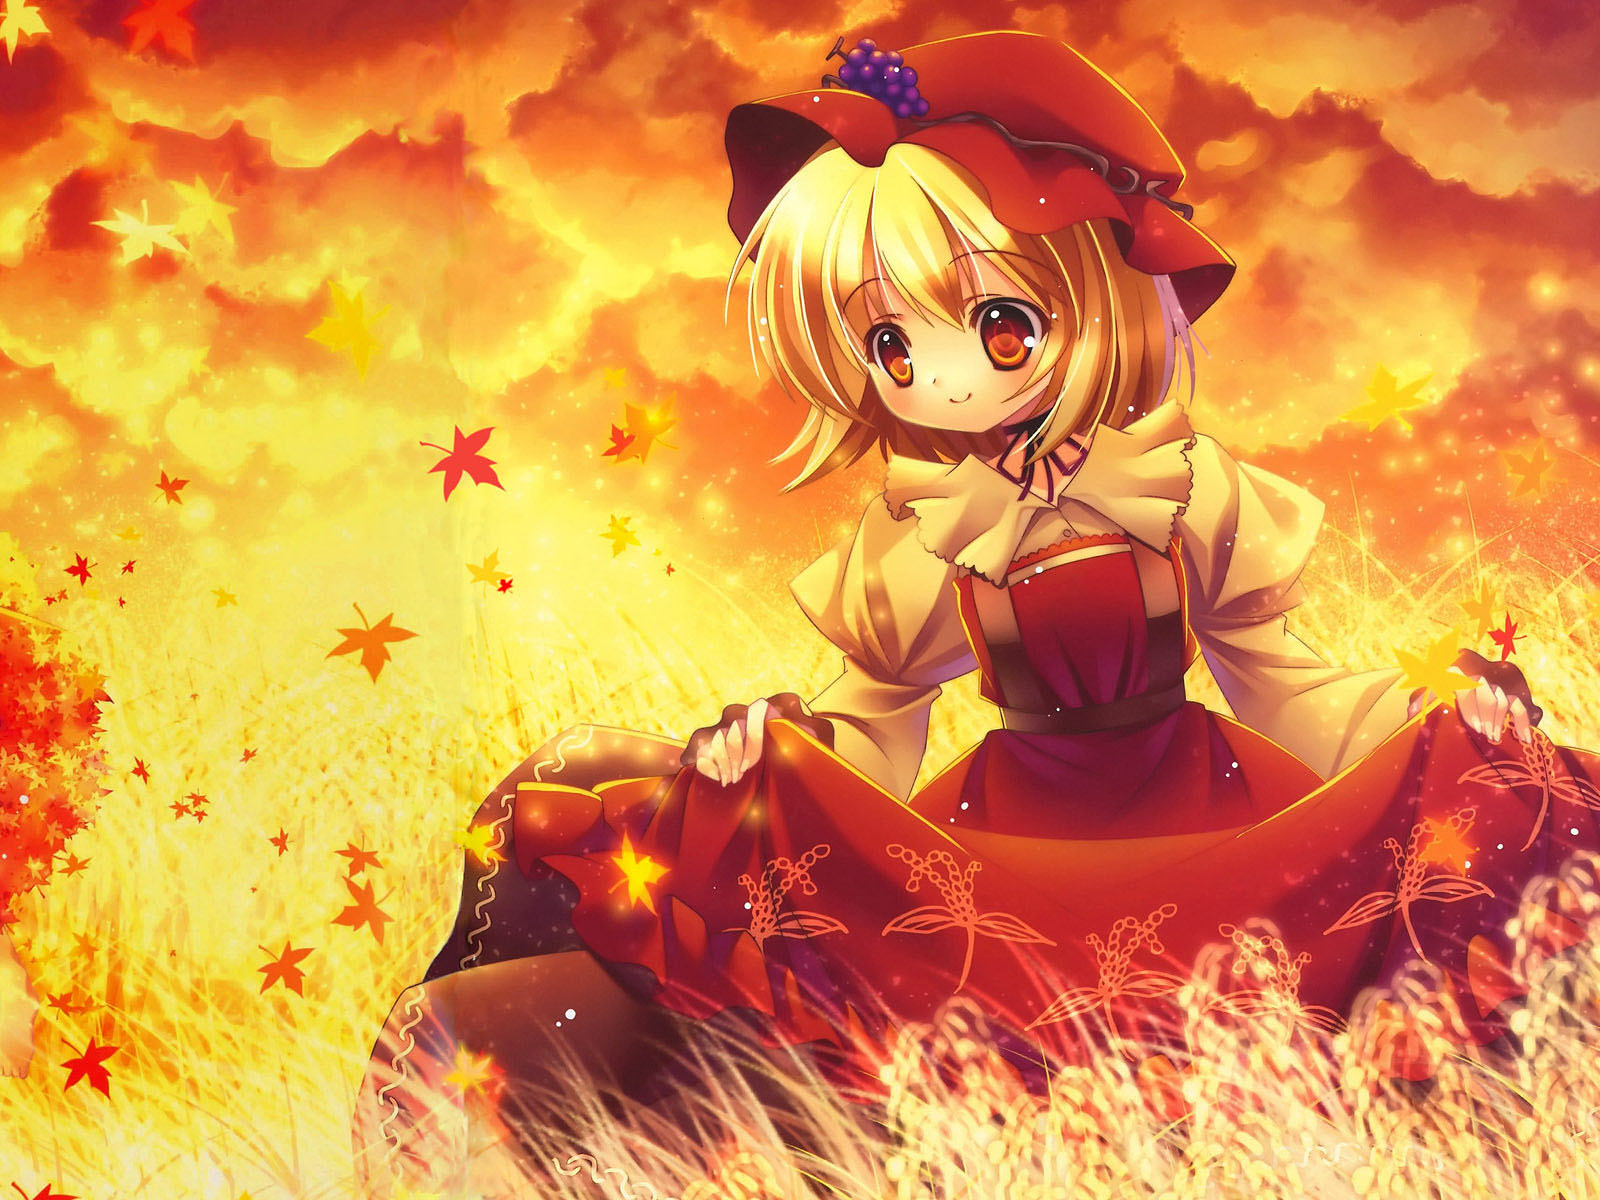 Best Wallpapers Collection: Best Anime girls Wallpapers